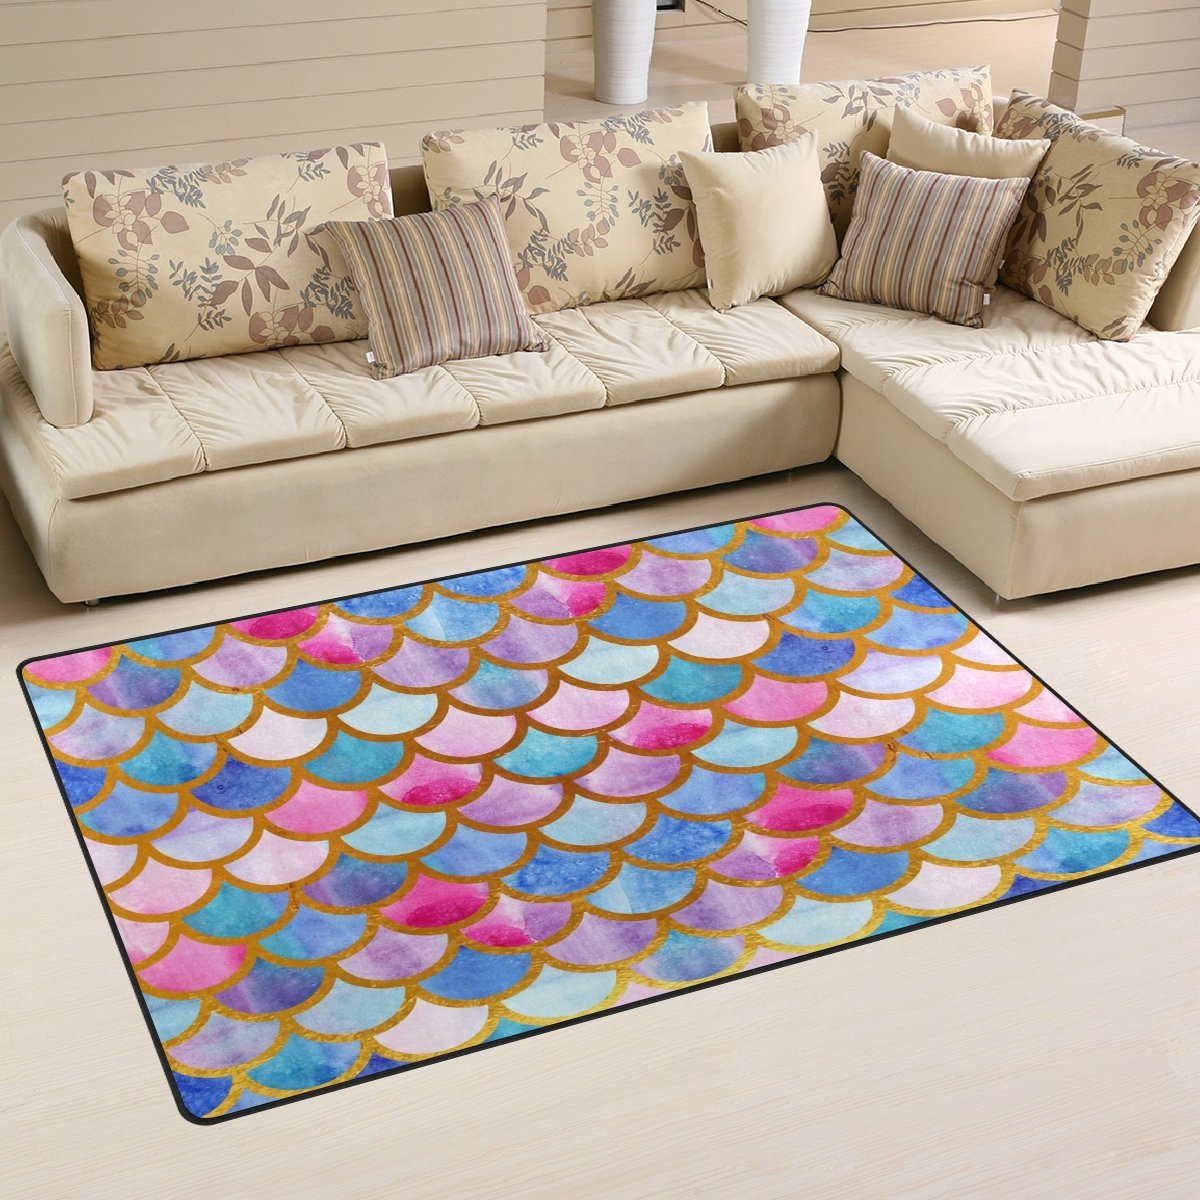 Naanle Colorful Rainbow Mermaid Scales Non Slip Area Rug for Living Dinning Room Bedroom Kitchen, 50 x 80 cm(1.7' x 2.6' ft), Watercolor Abstract Art Nursery Rug Floor Carpet Yoga Mat